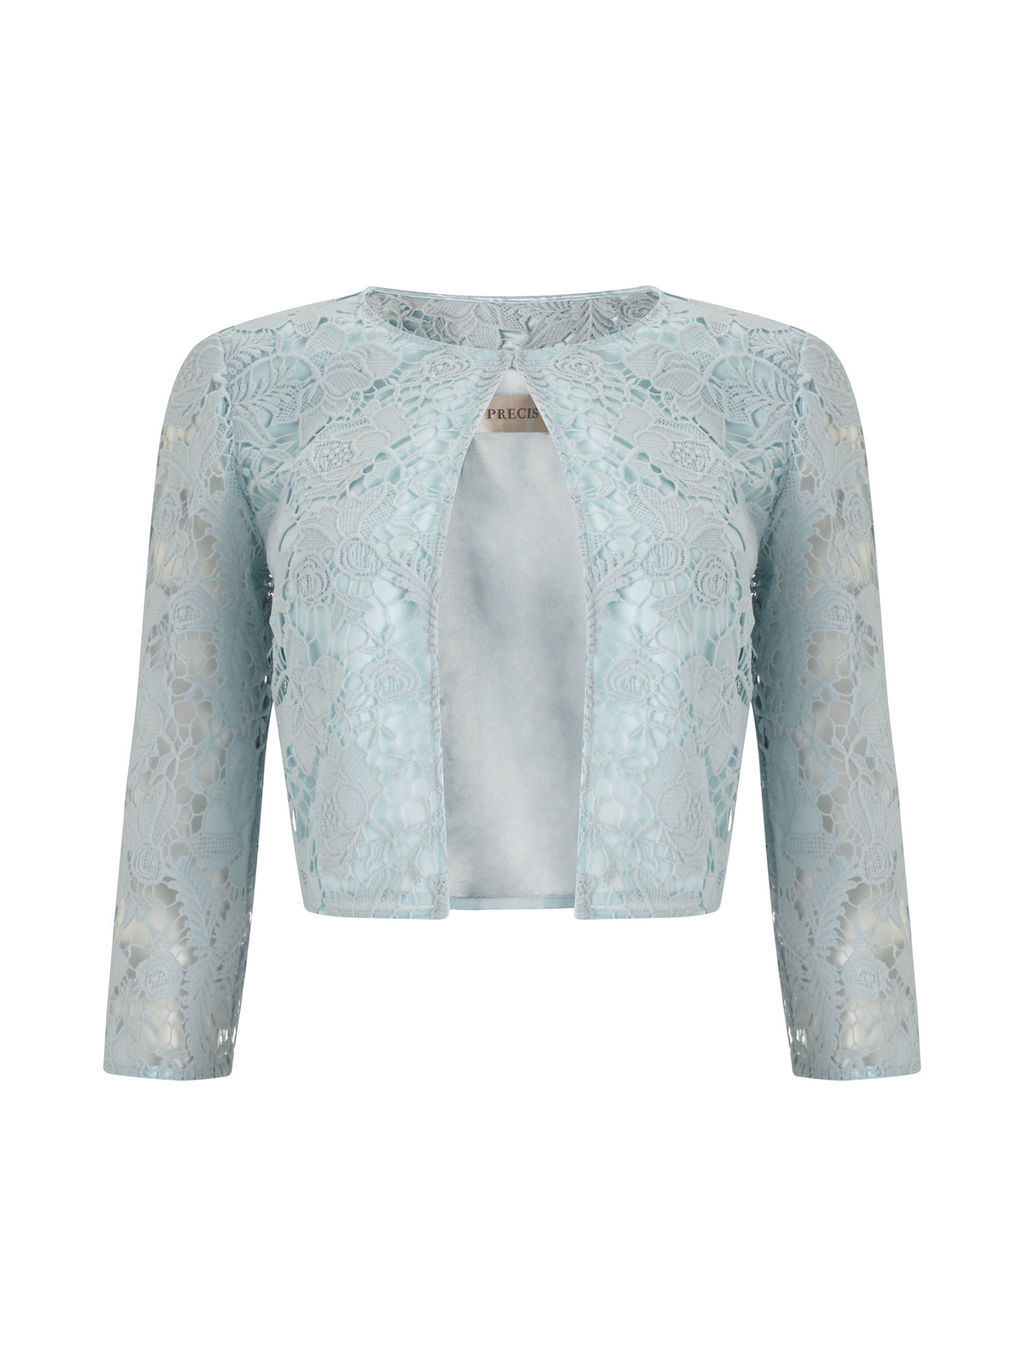 Lace Crop Jacket - style: bolero/shrug; collar: round collar/collarless; predominant colour: pale blue; fit: tailored/fitted; fibres: polyester/polyamide - 100%; occasions: occasion; sleeve length: 3/4 length; sleeve style: standard; texture group: lace; collar break: high; pattern type: fabric; pattern size: standard; pattern: patterned/print; embellishment: lace; length: cropped; season: s/s 2016; wardrobe: event